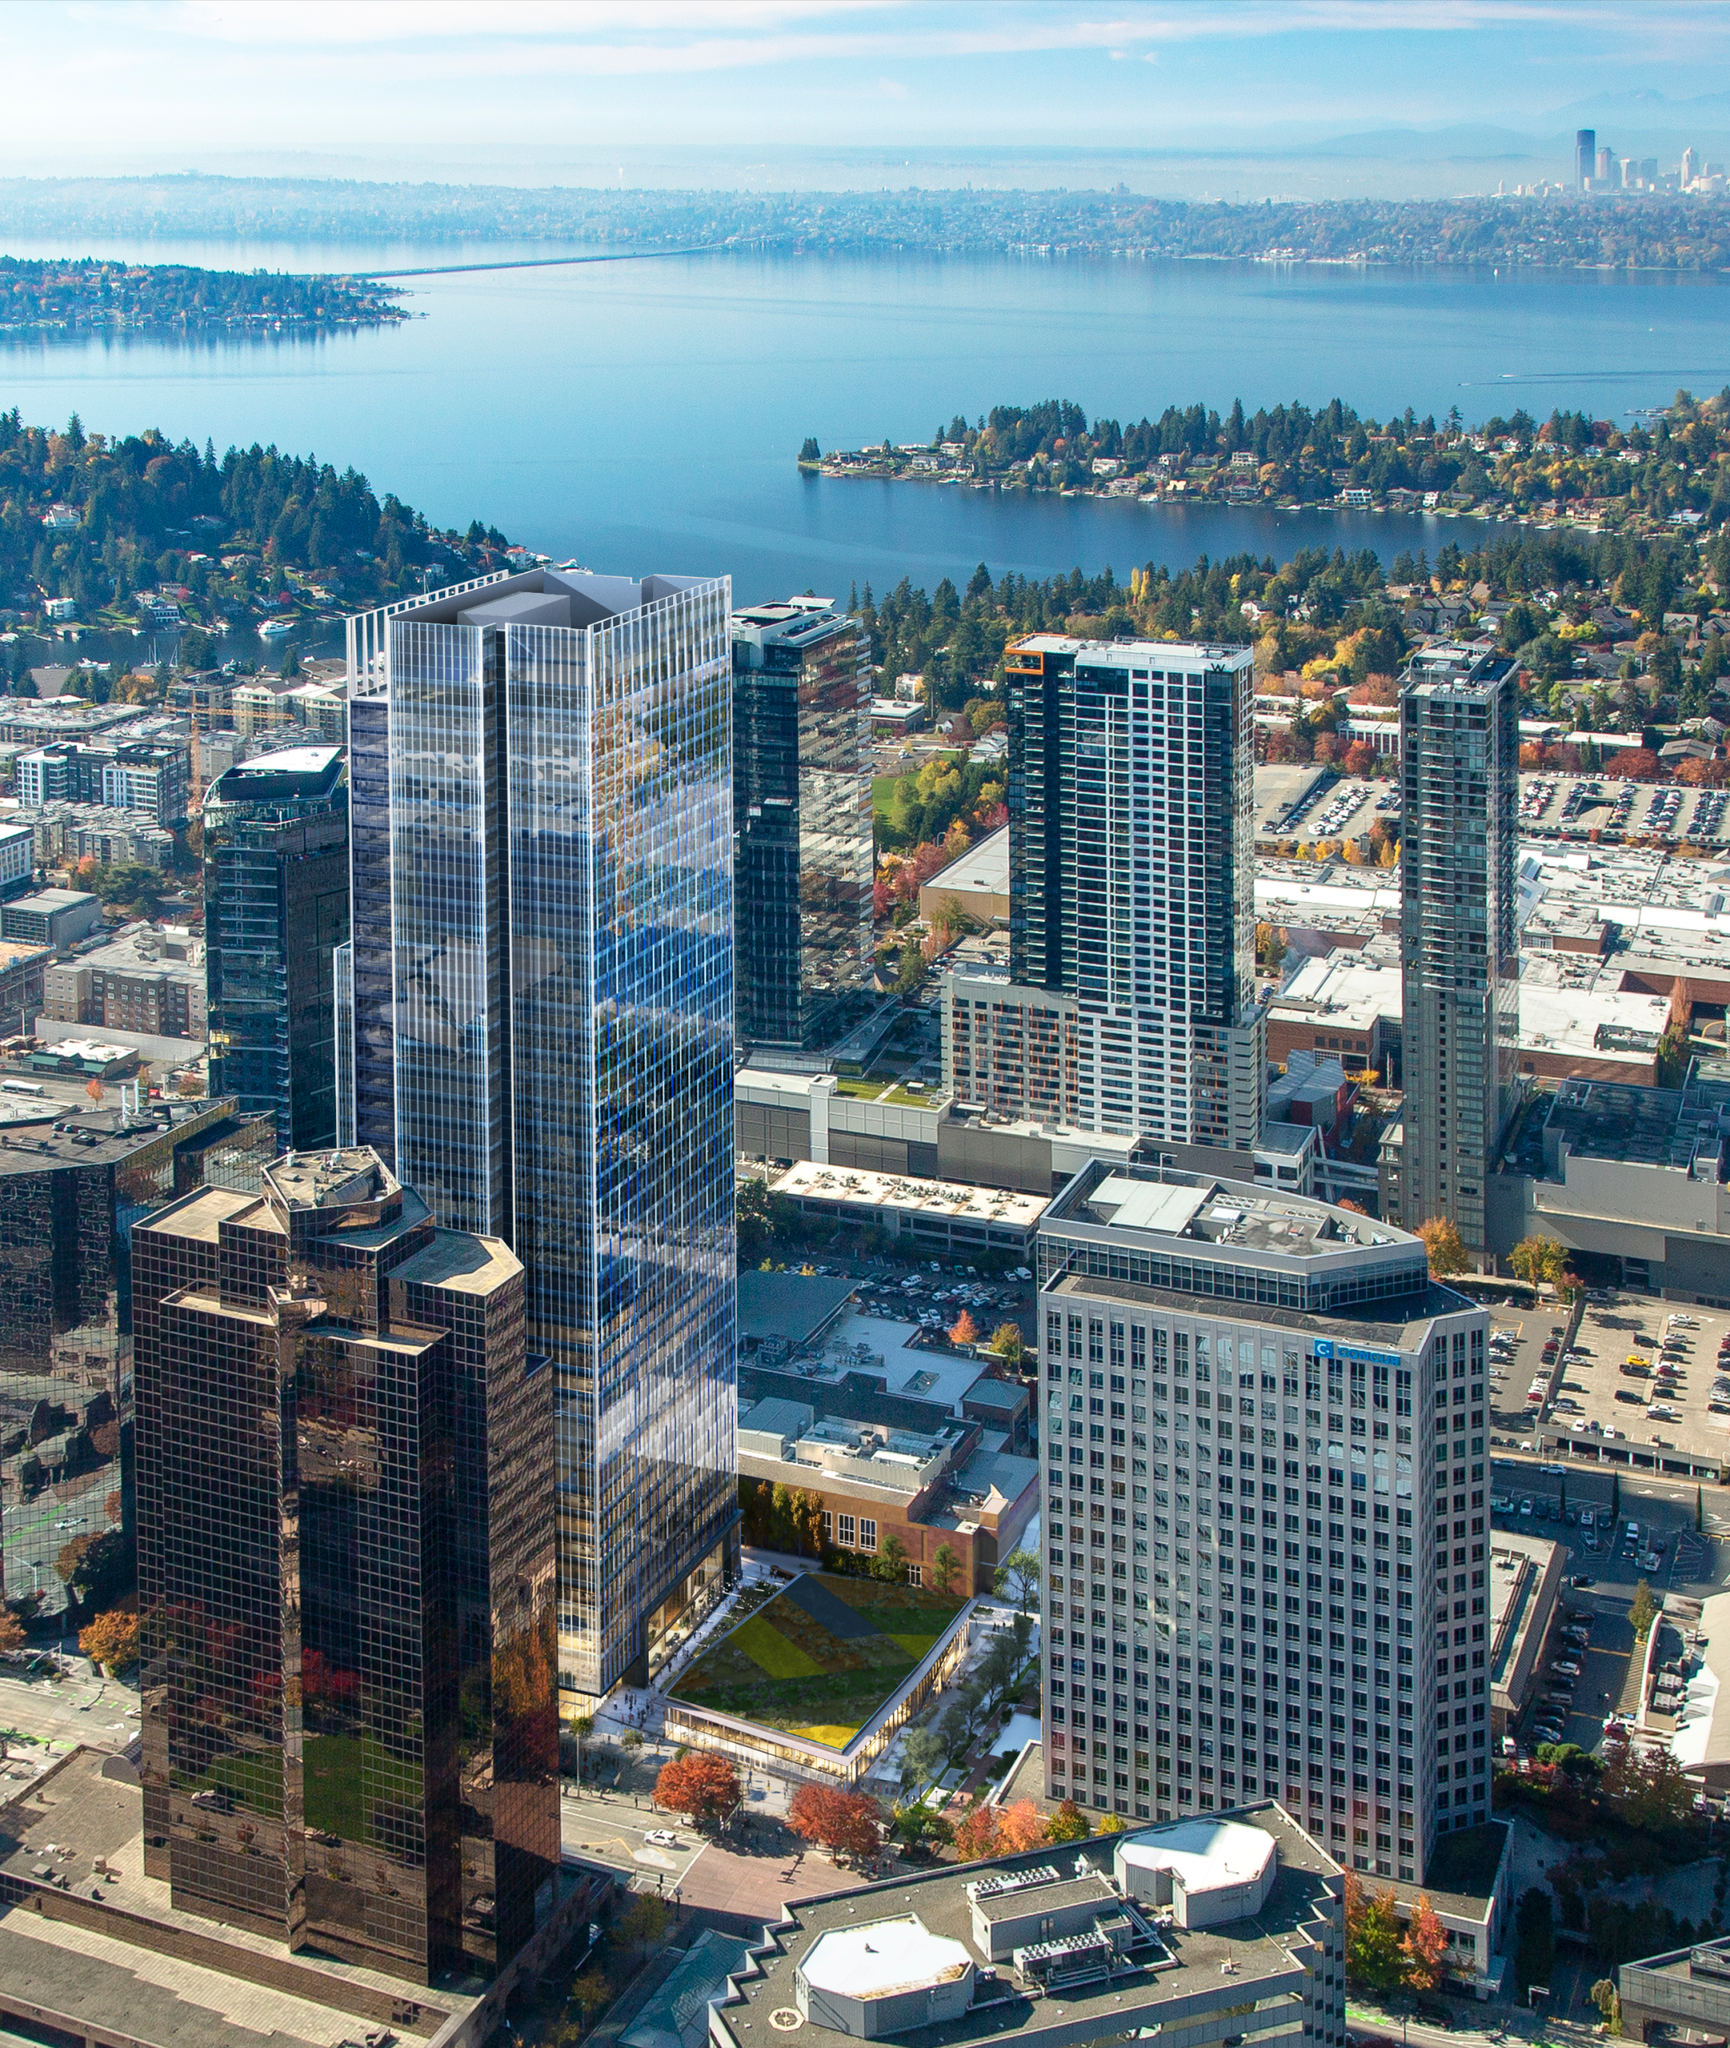 Amazon Office Tower in Bellevue